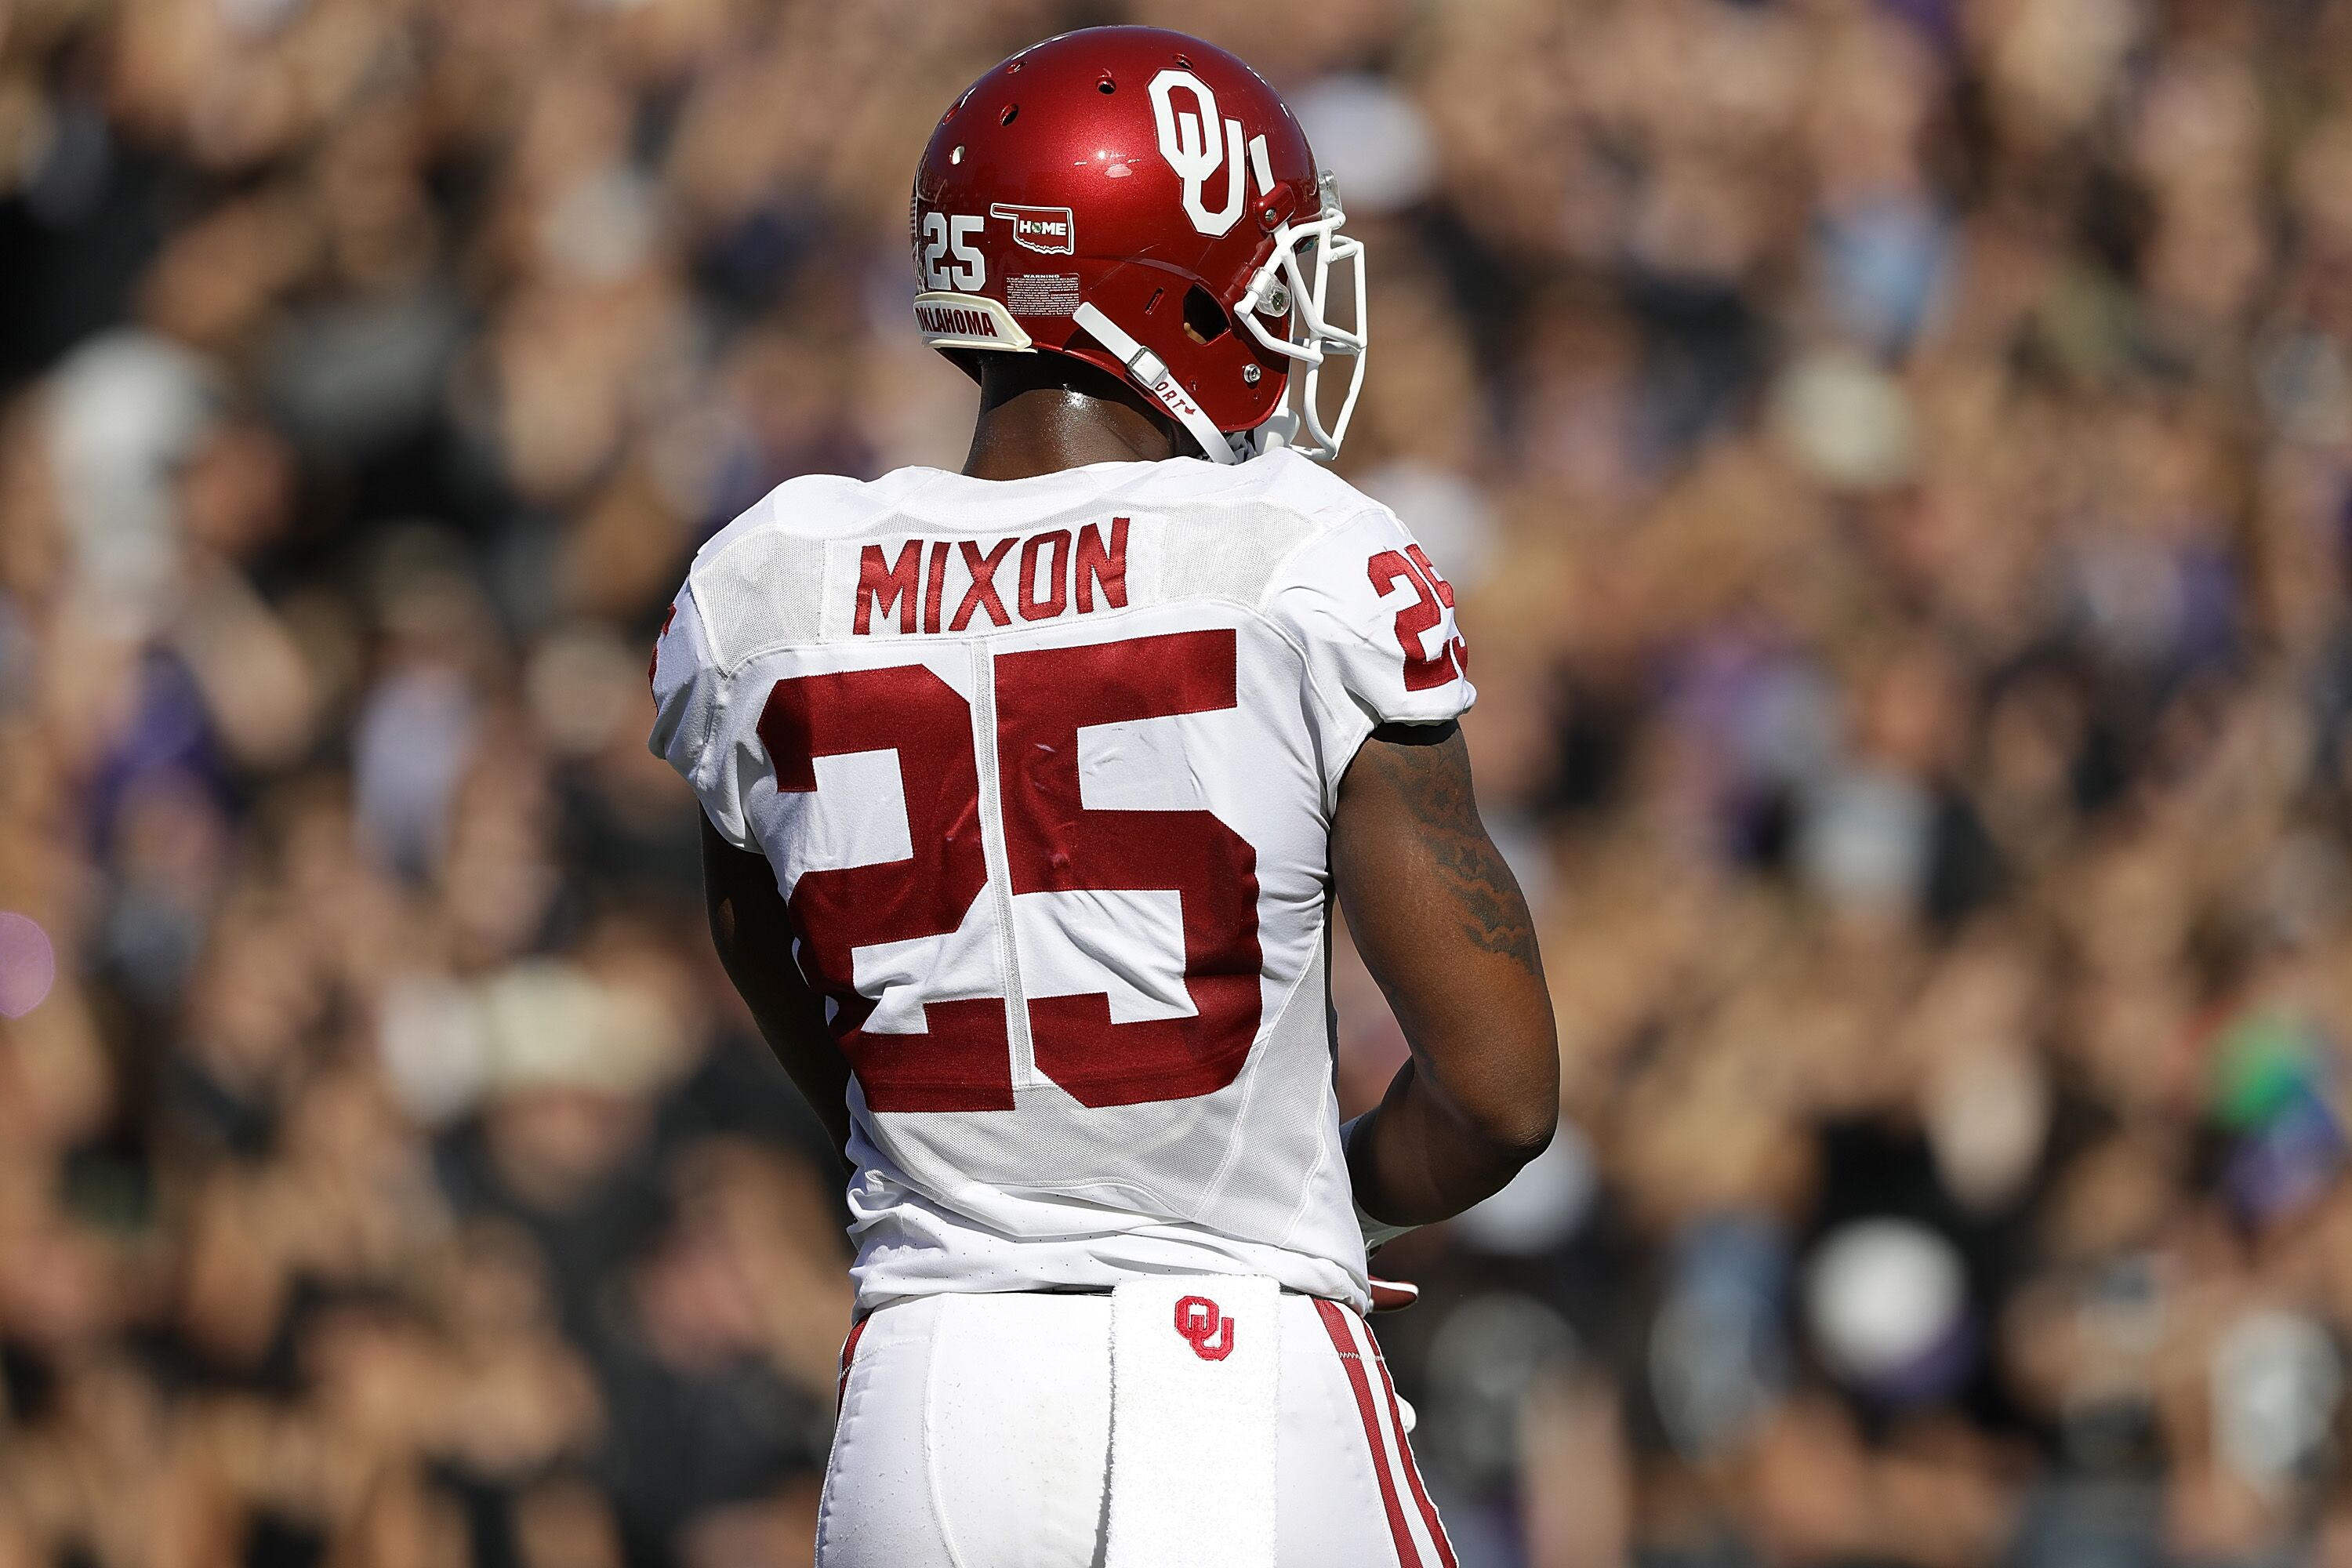 a13e202f Bengals' Joe Mixon is a weapon waiting to explode